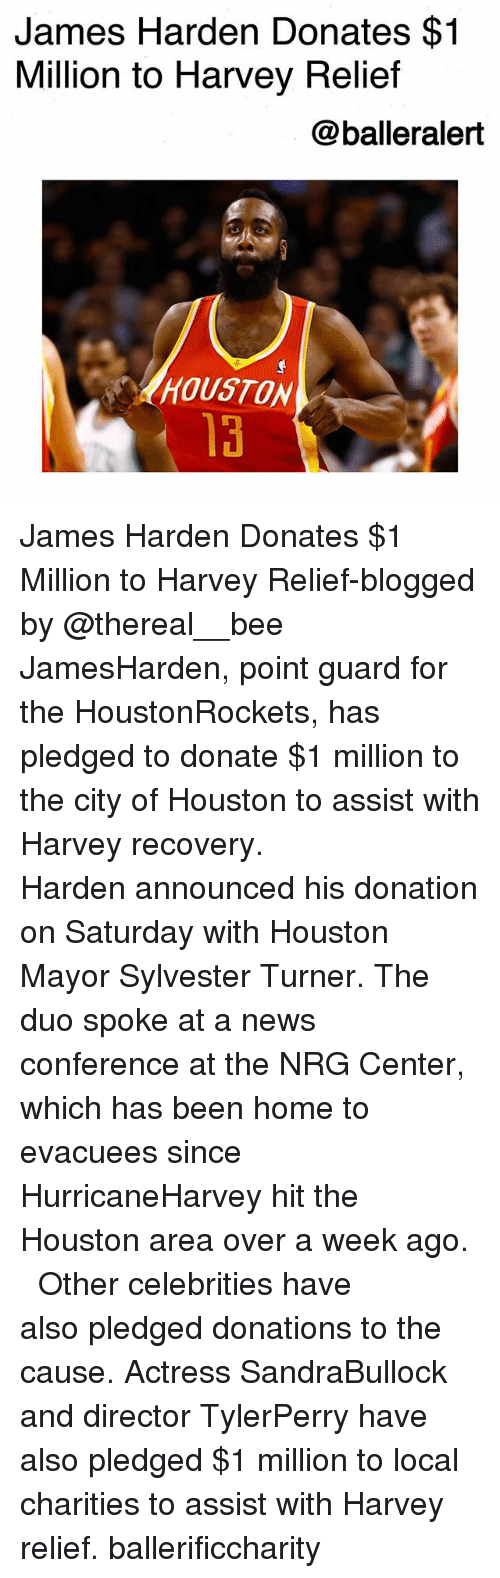 Centere: James Harden Donates $1  Million to Harvey Relief  @balleralert  HOUSTON  13 James Harden Donates $1 Million to Harvey Relief-blogged by @thereal__bee ⠀⠀⠀⠀⠀⠀⠀⠀⠀ ⠀⠀ JamesHarden, point guard for the HoustonRockets, has pledged to donate $1 million to the city of Houston to assist with Harvey recovery. ⠀⠀⠀⠀⠀⠀⠀⠀⠀ ⠀⠀ Harden announced his donation on Saturday with Houston Mayor Sylvester Turner. The duo spoke at a news conference at the NRG Center, which has been home to evacuees since HurricaneHarvey hit the Houston area over a week ago. ⠀⠀⠀⠀⠀⠀⠀⠀⠀ ⠀⠀ Other celebrities have also pledged donations to the cause. Actress SandraBullock and director TylerPerry have also pledged $1 million to local charities to assist with Harvey relief. ballerificcharity